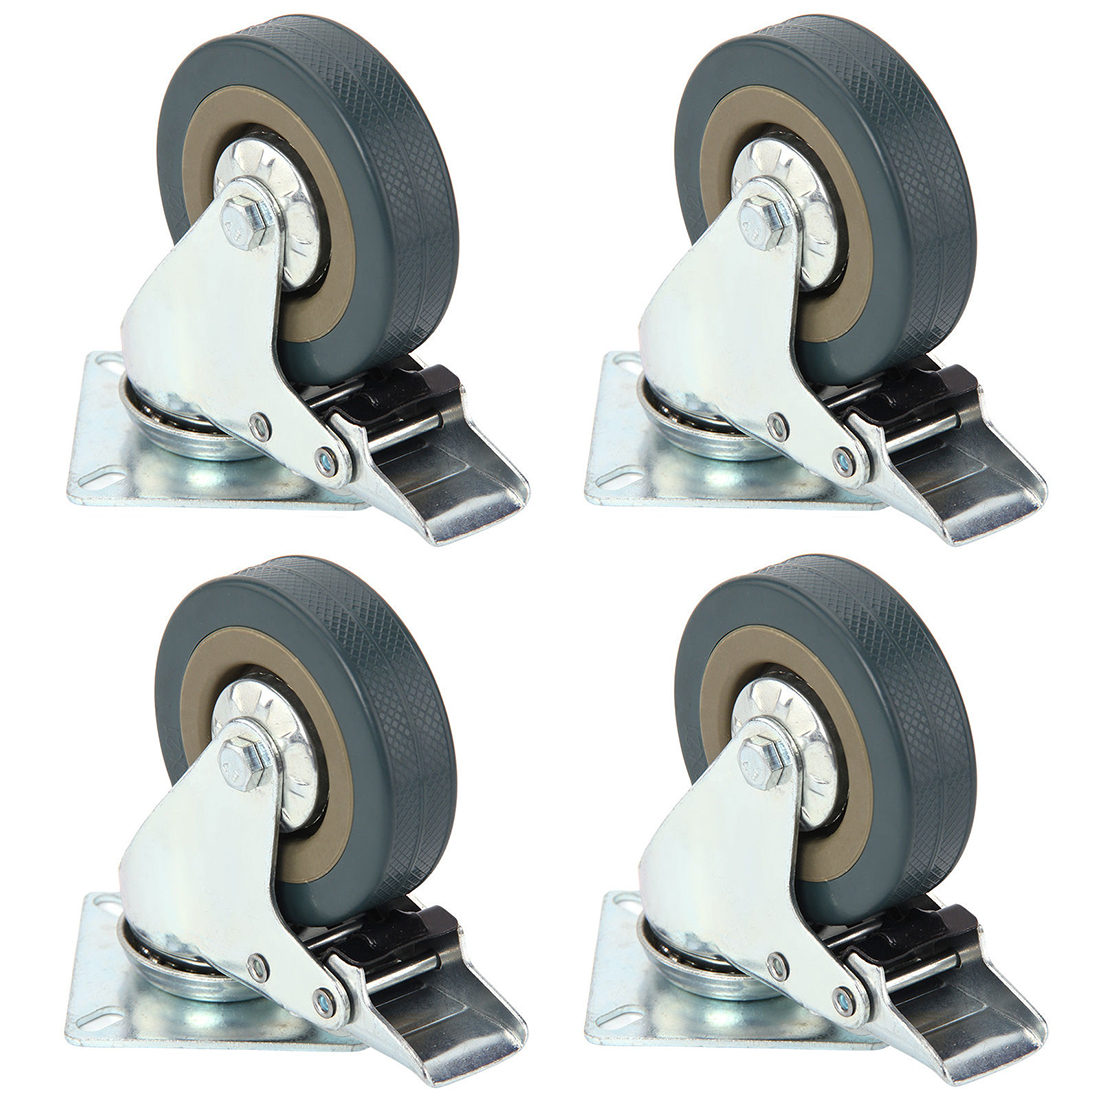 Set of Heavy Duty 50x17mm Rubber Swivel Castor Wheels Trolley Caster Brake 40KGModel:4 with brake